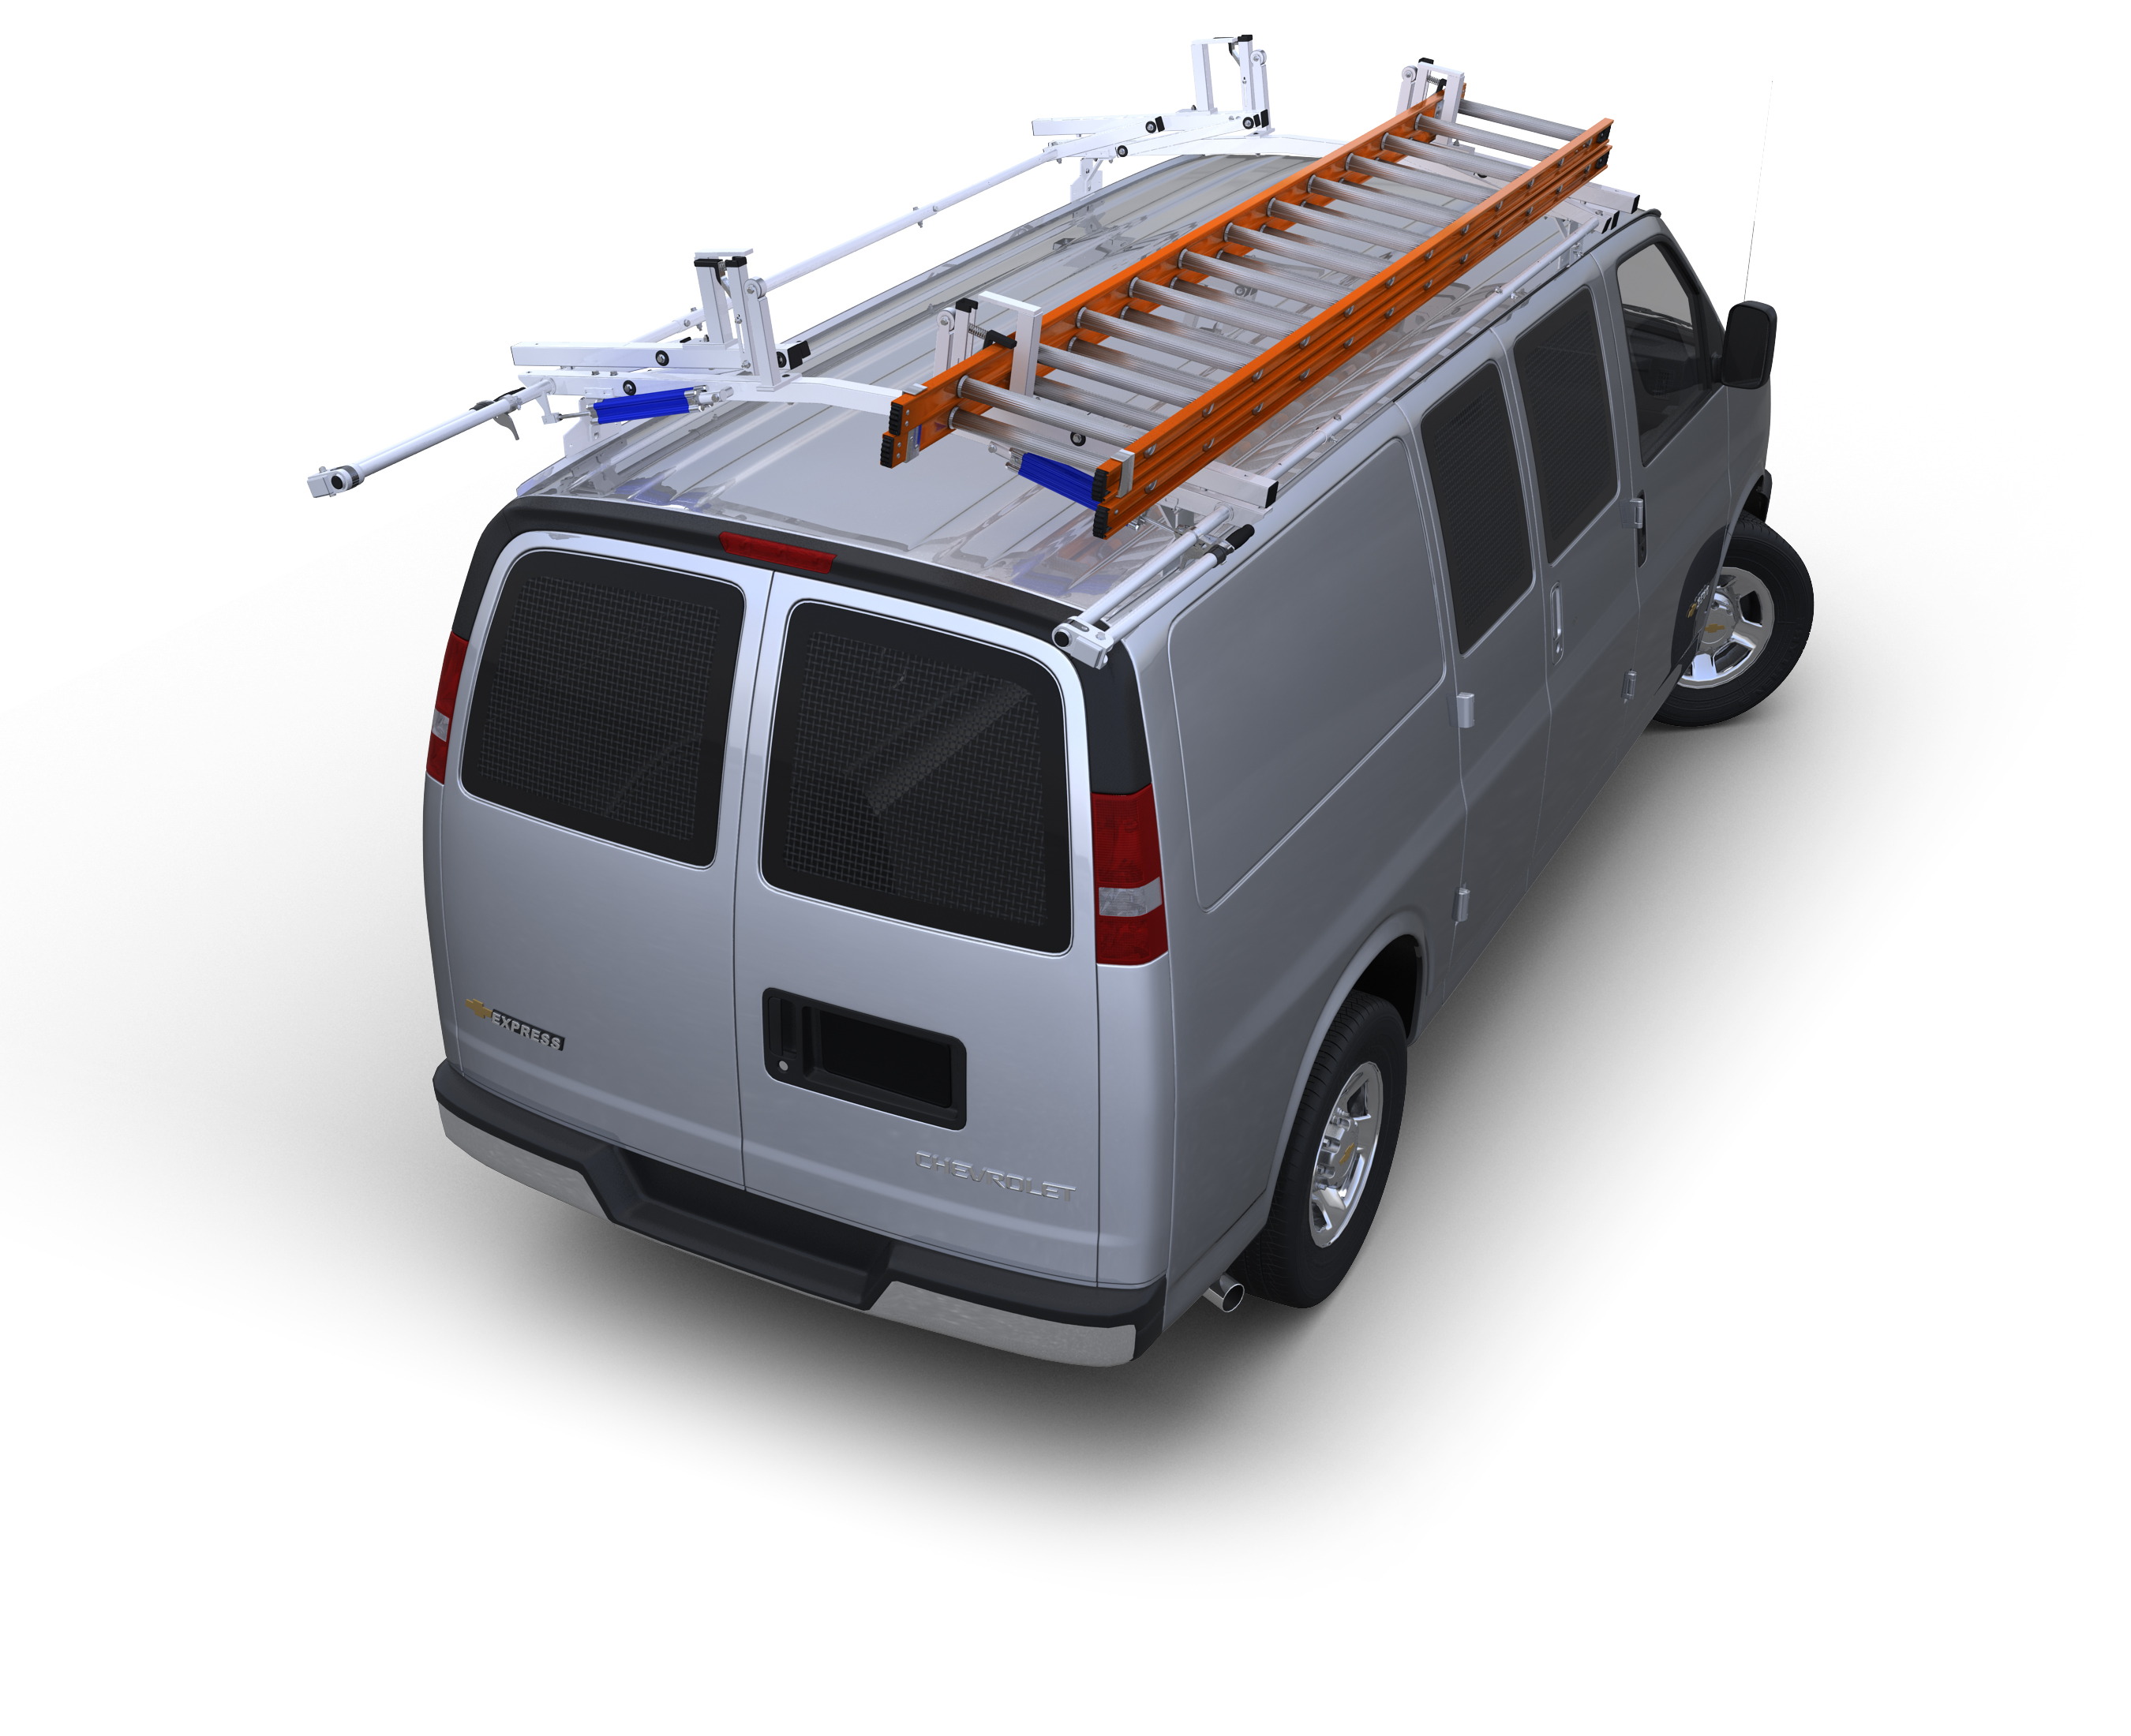 Topper Hot Dip Galvanized Cargo Carrier Rack - 12' - for Standard Wheel Base Vans